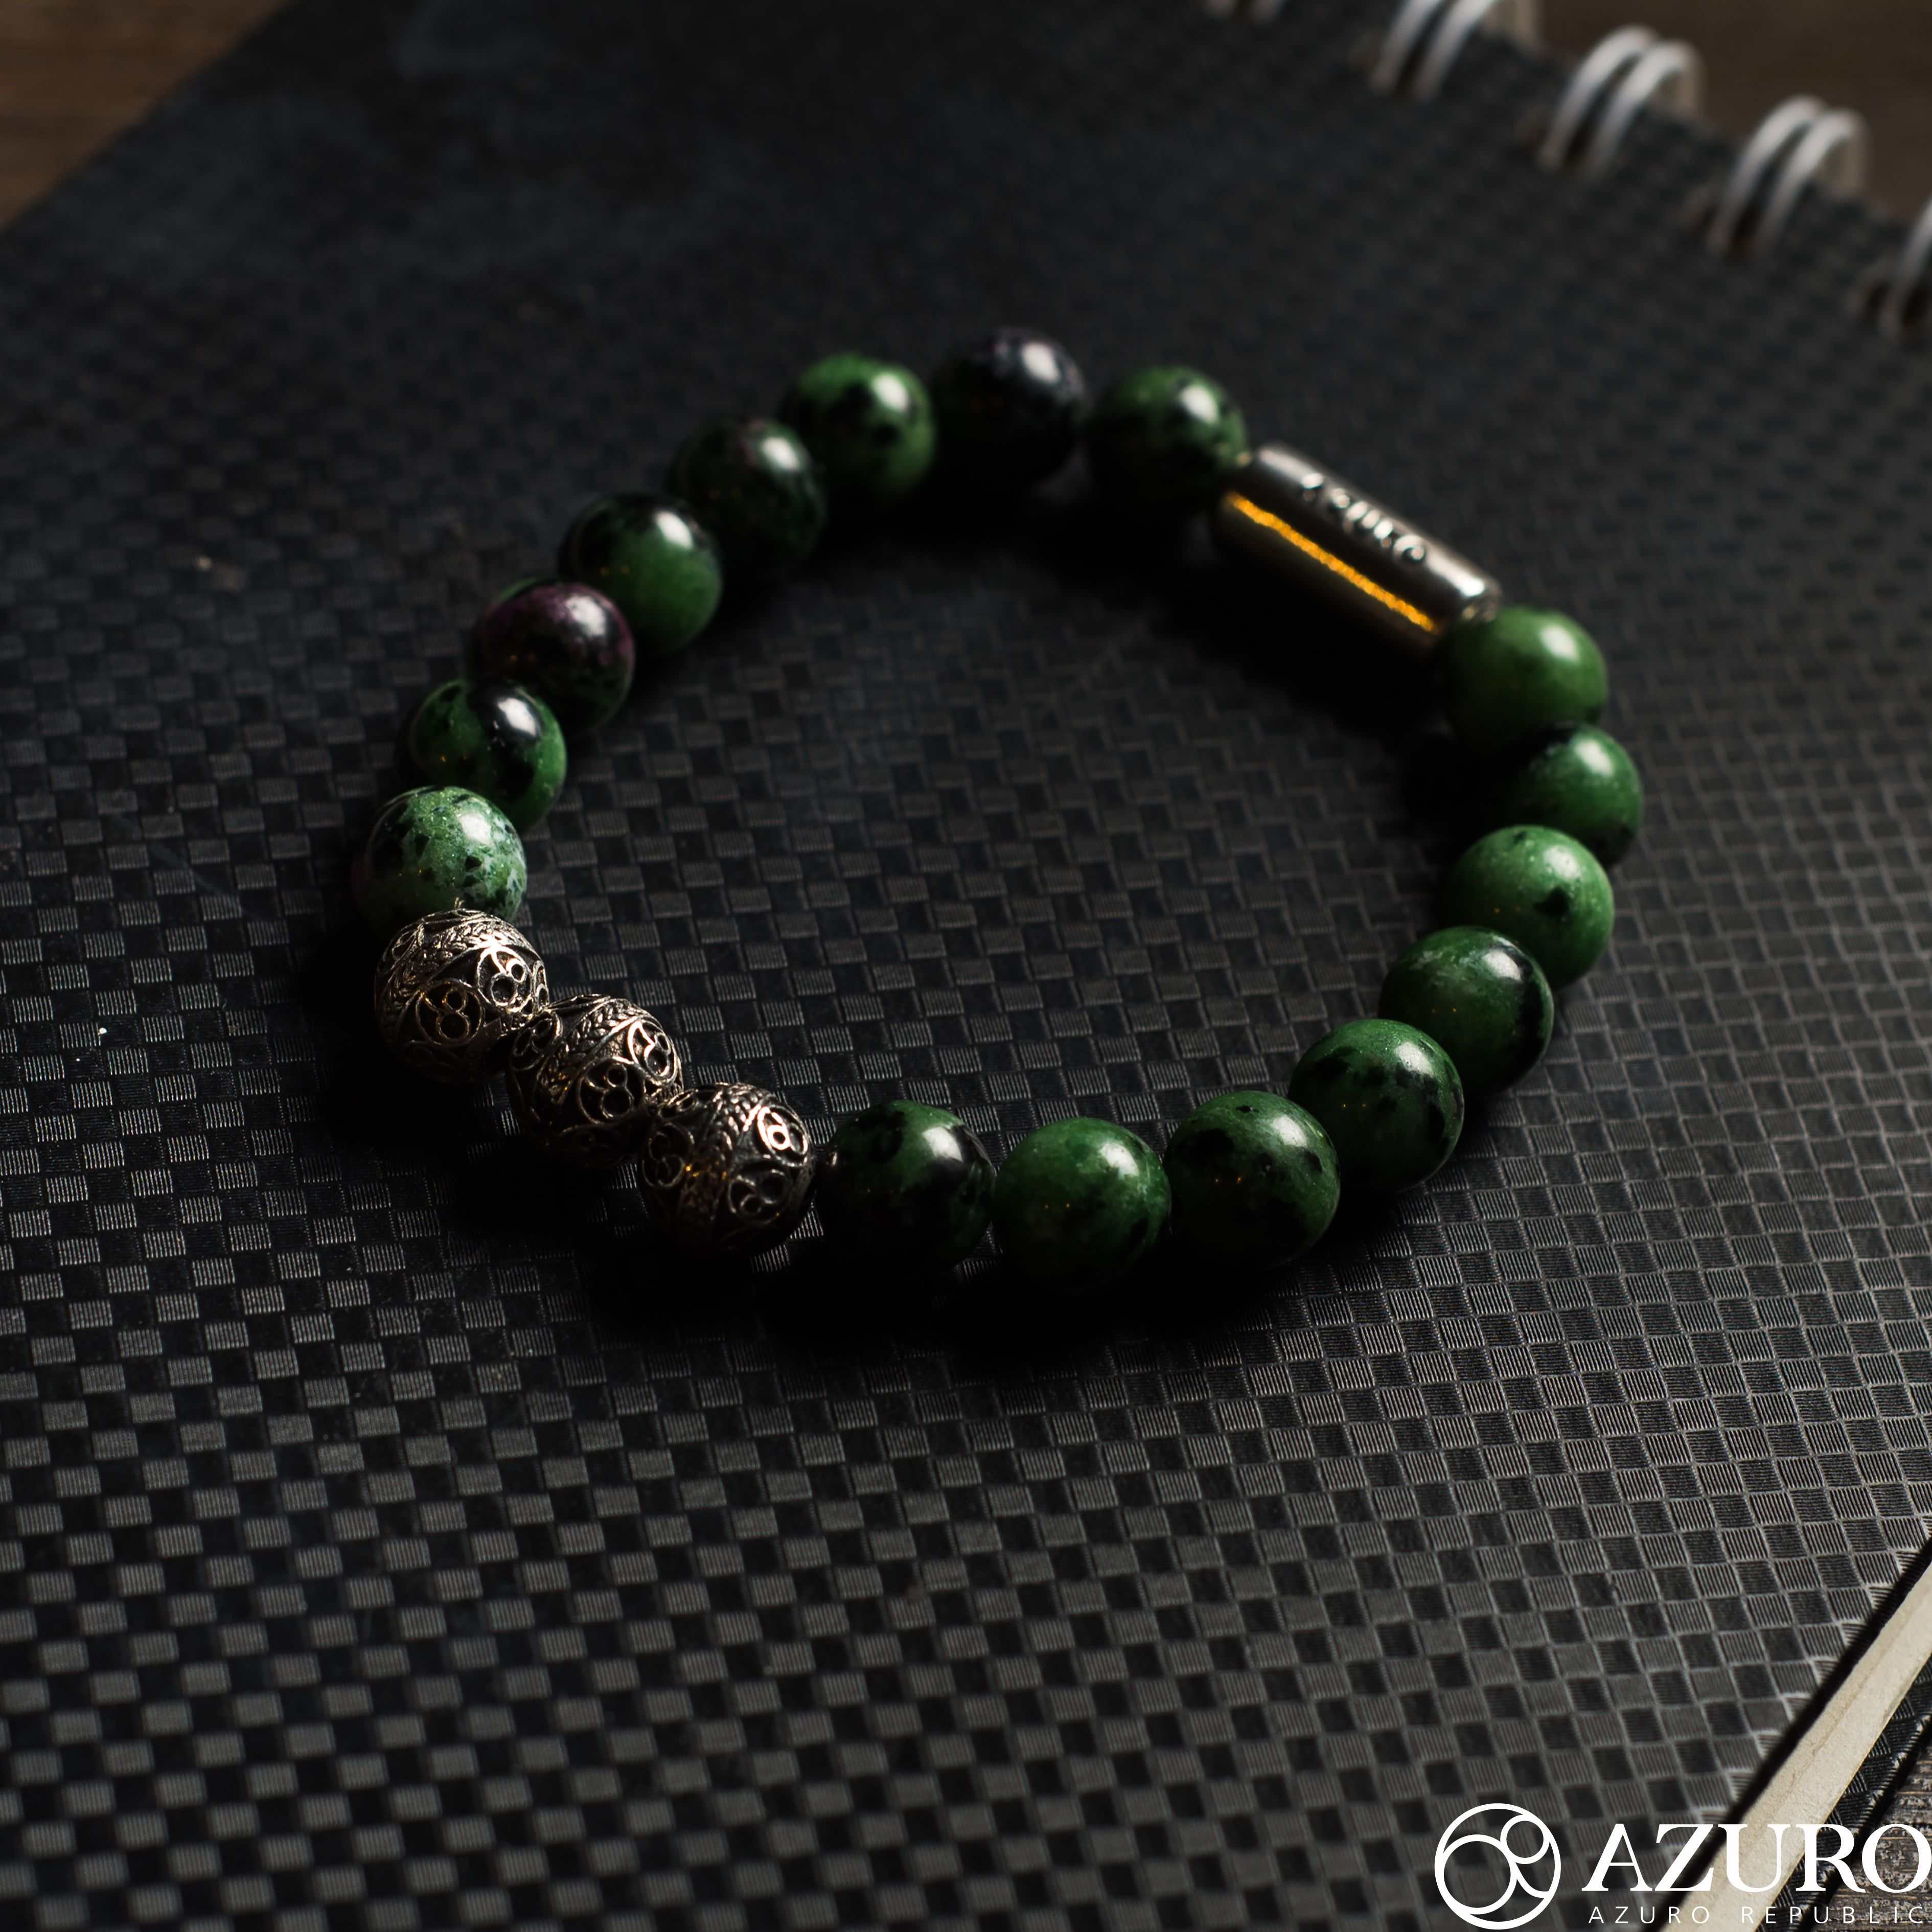 Limited stockue tailormade handcrafted menus bracelets unique